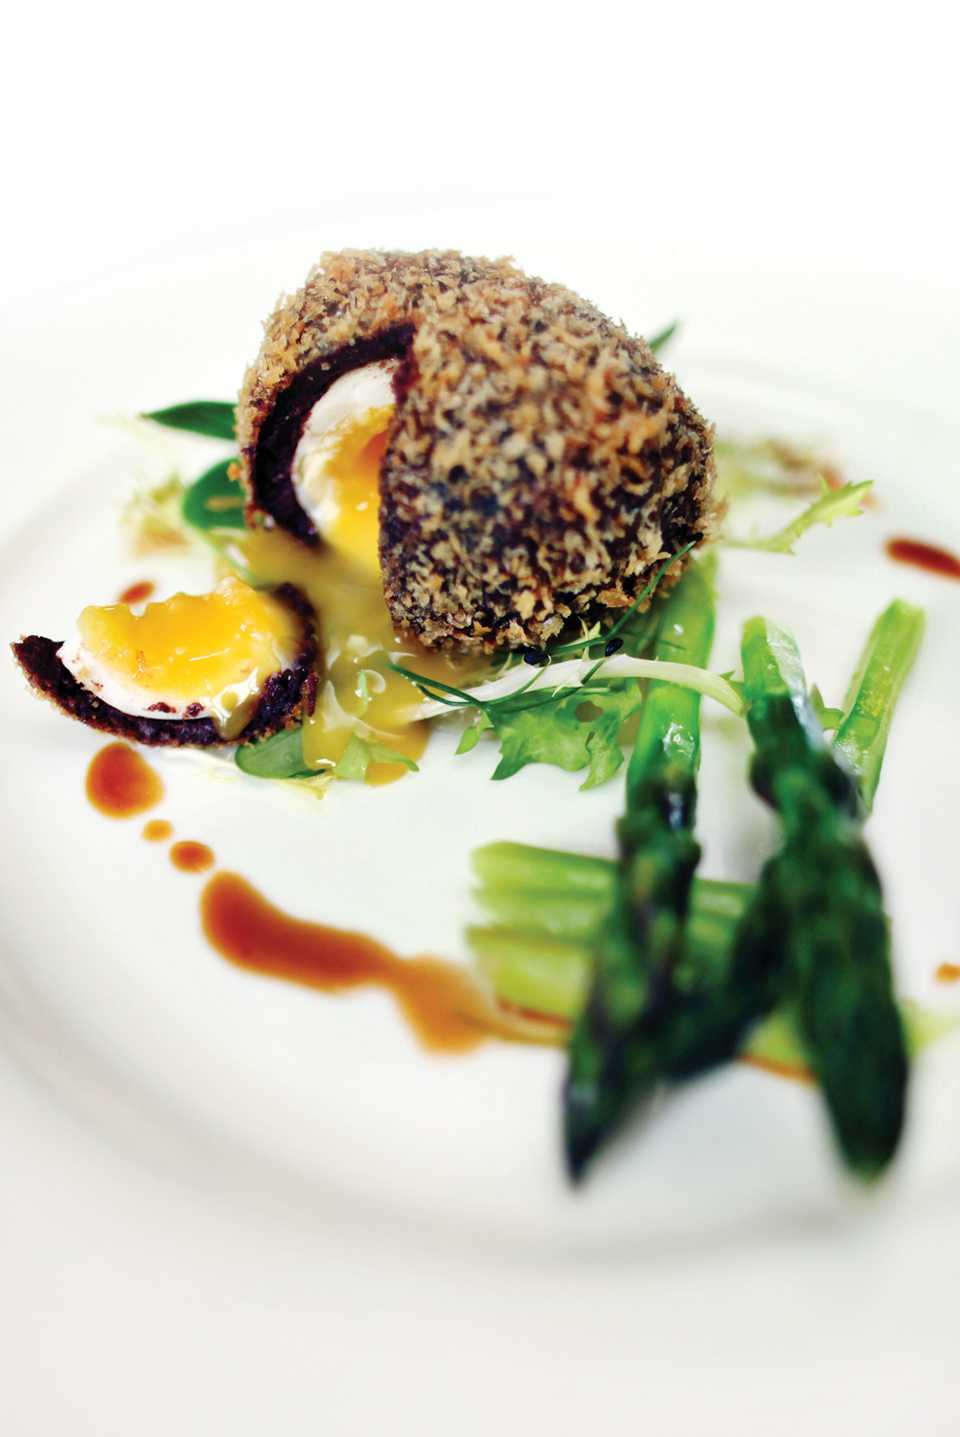 The couple chose a scotch egg starter for their wedding breakfast at Bassmead Manor Barns